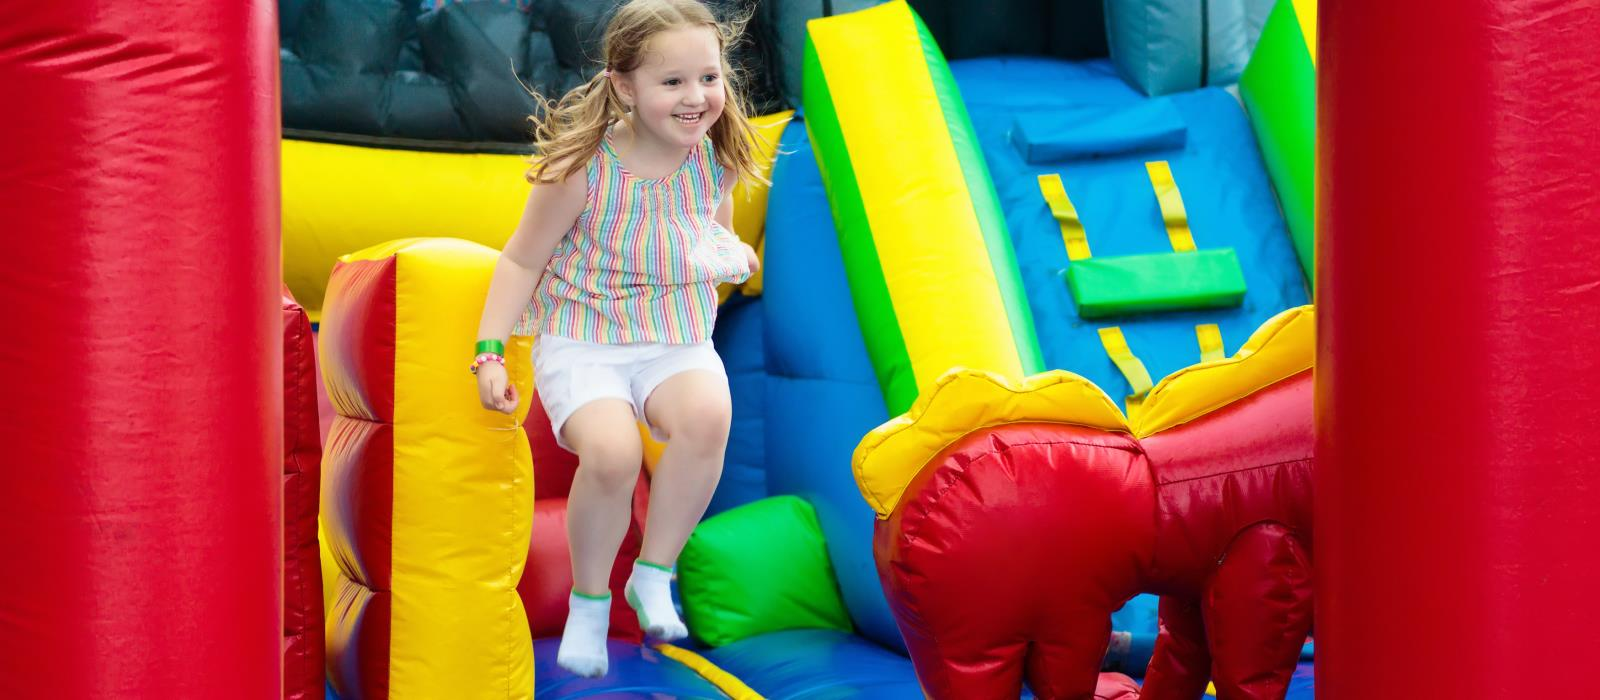 Young girl jumping on bouncy castle